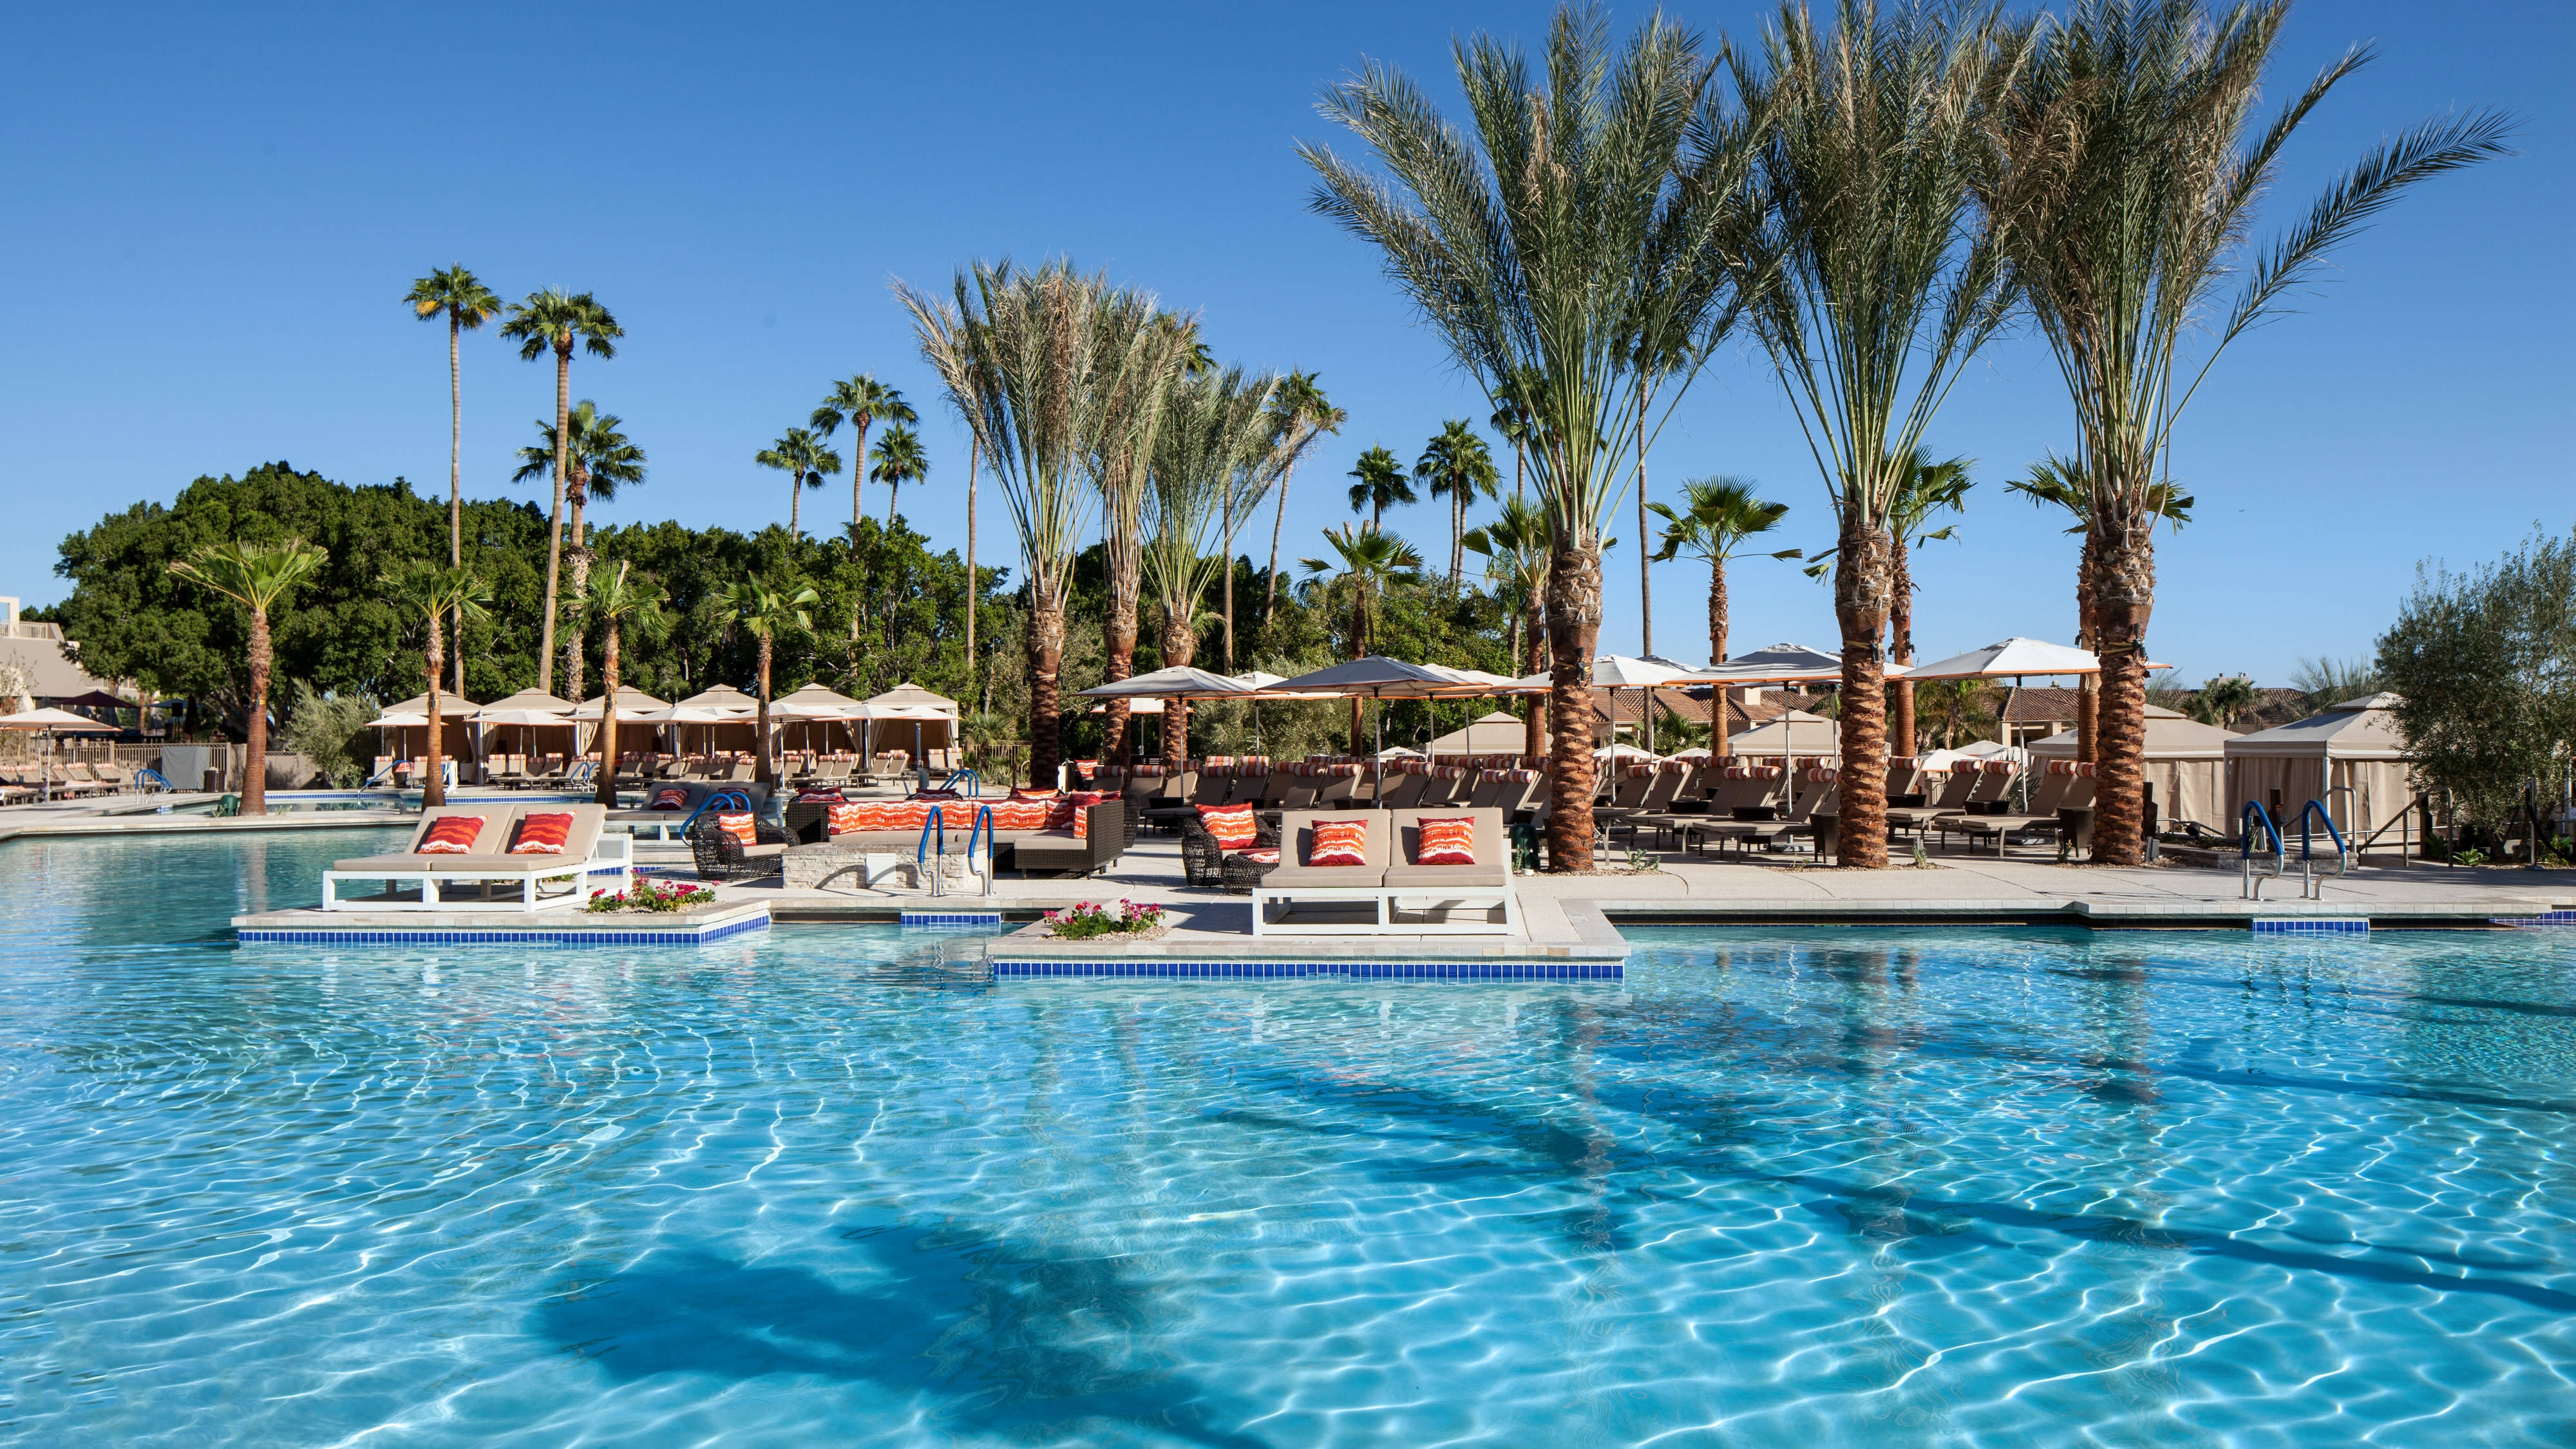 The Phoenician Pools - South View